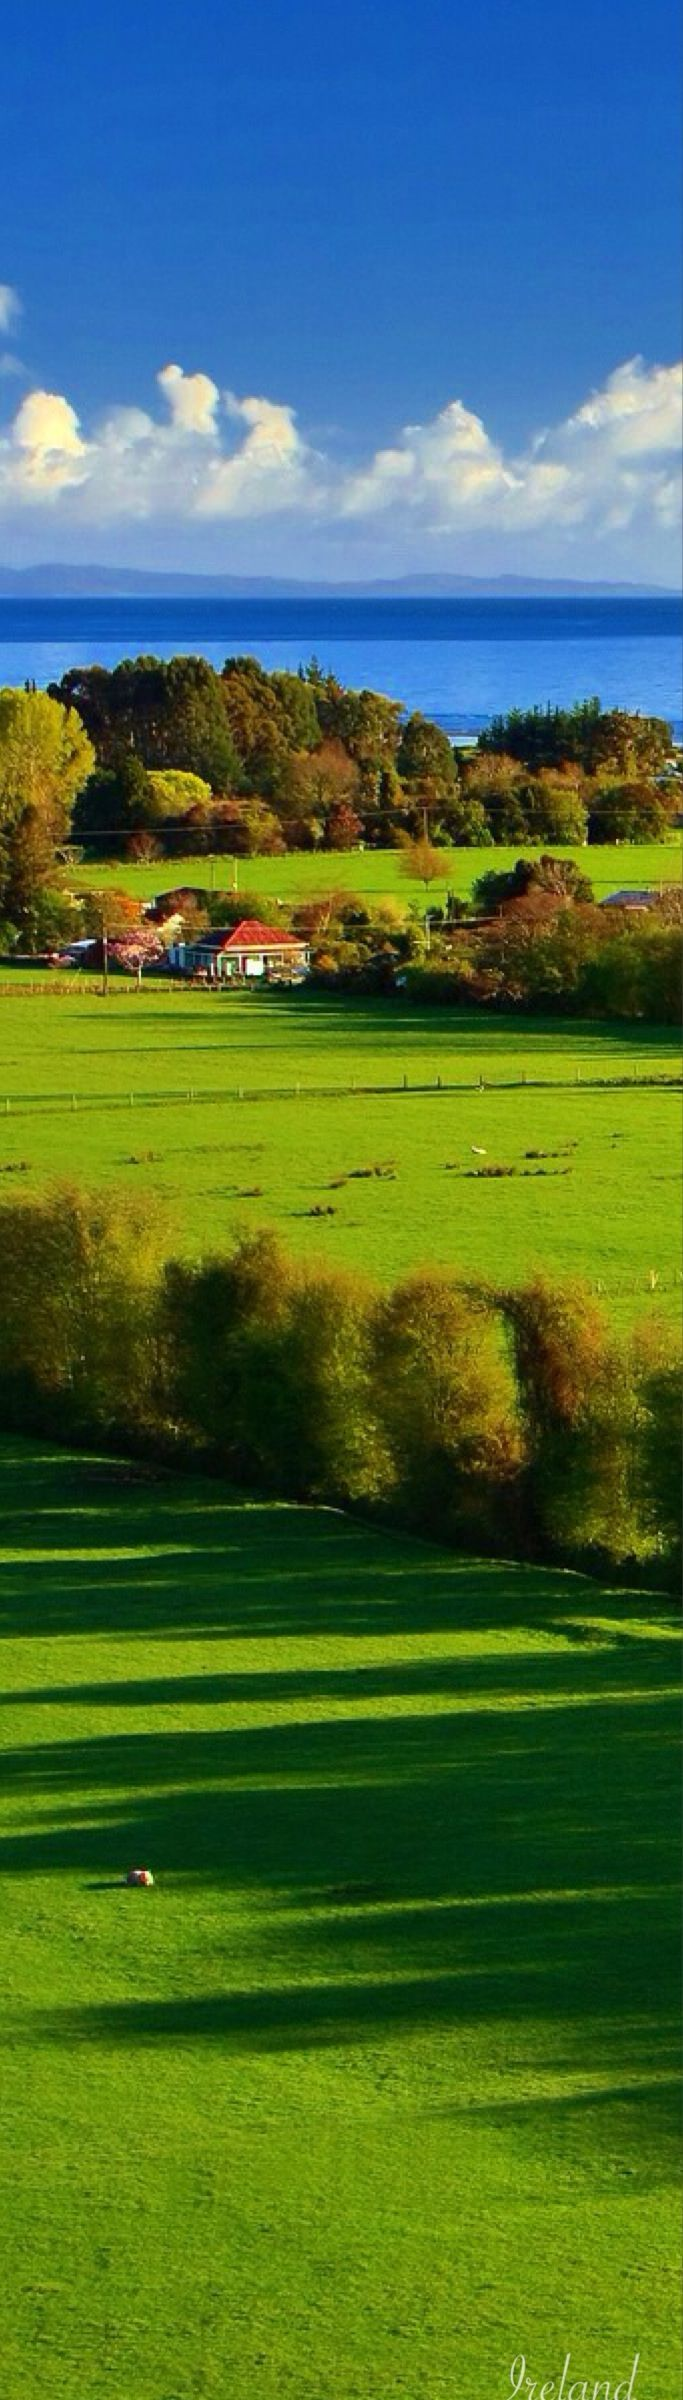 Ireland's lush green landscape. How can anyone help but fall in love with this?